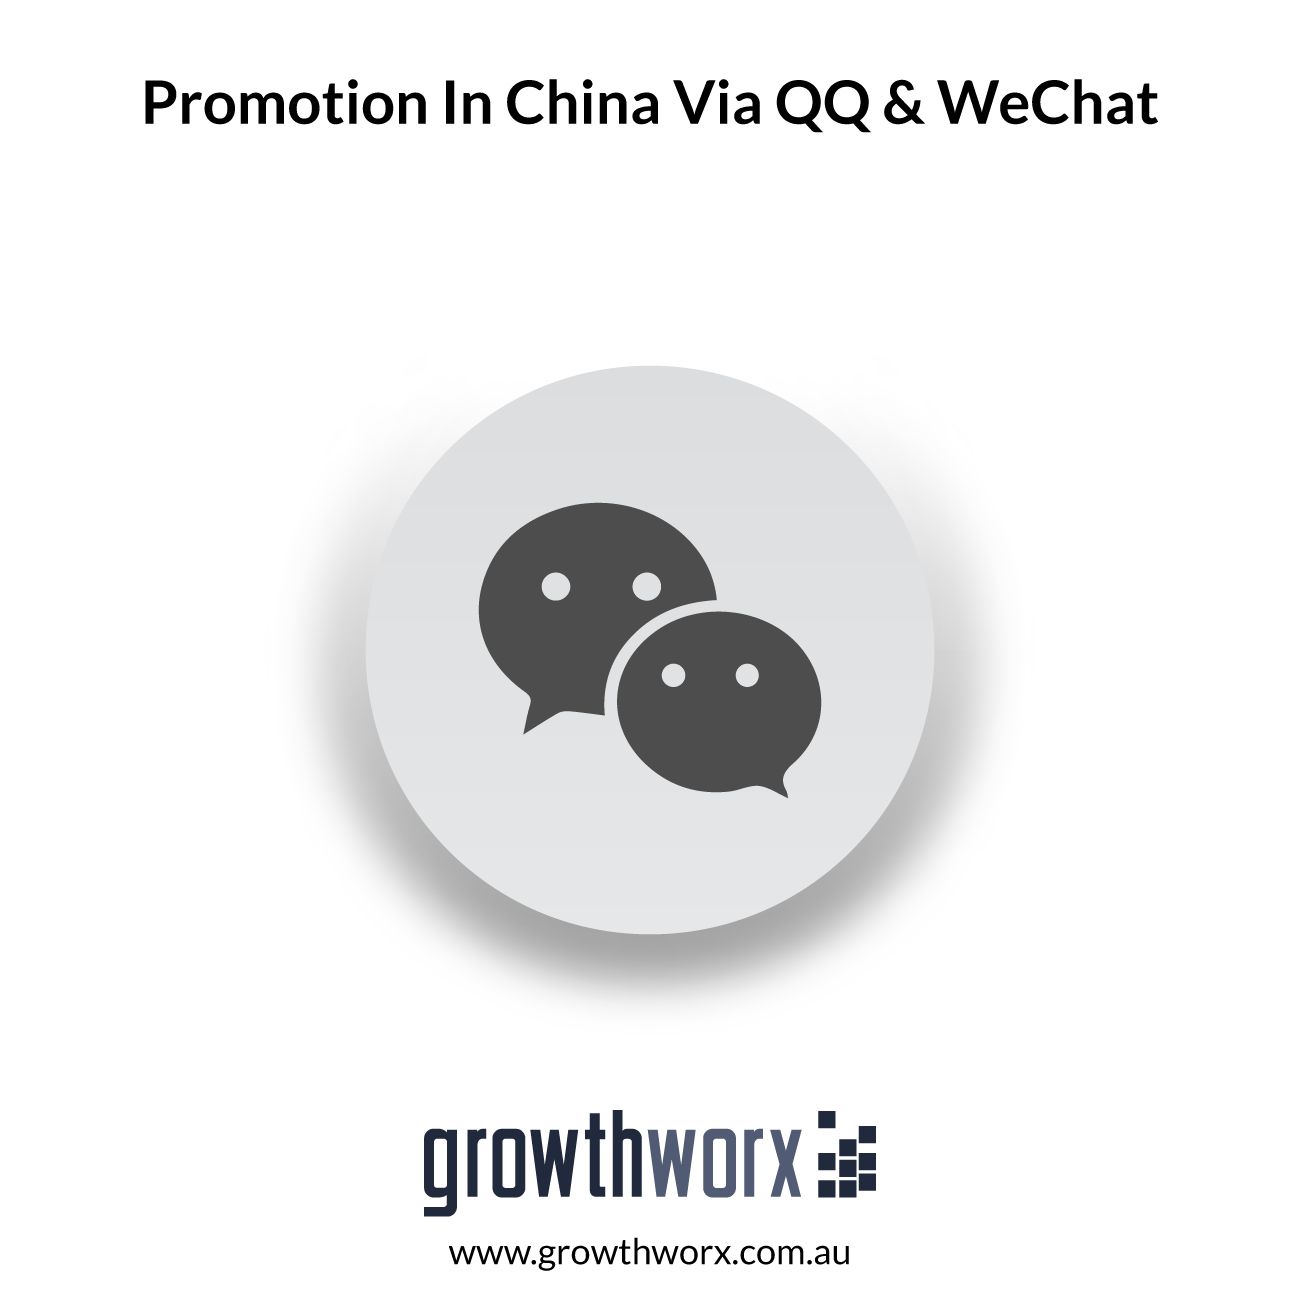 We will promote your business in china via qq and wechat to 98k 1